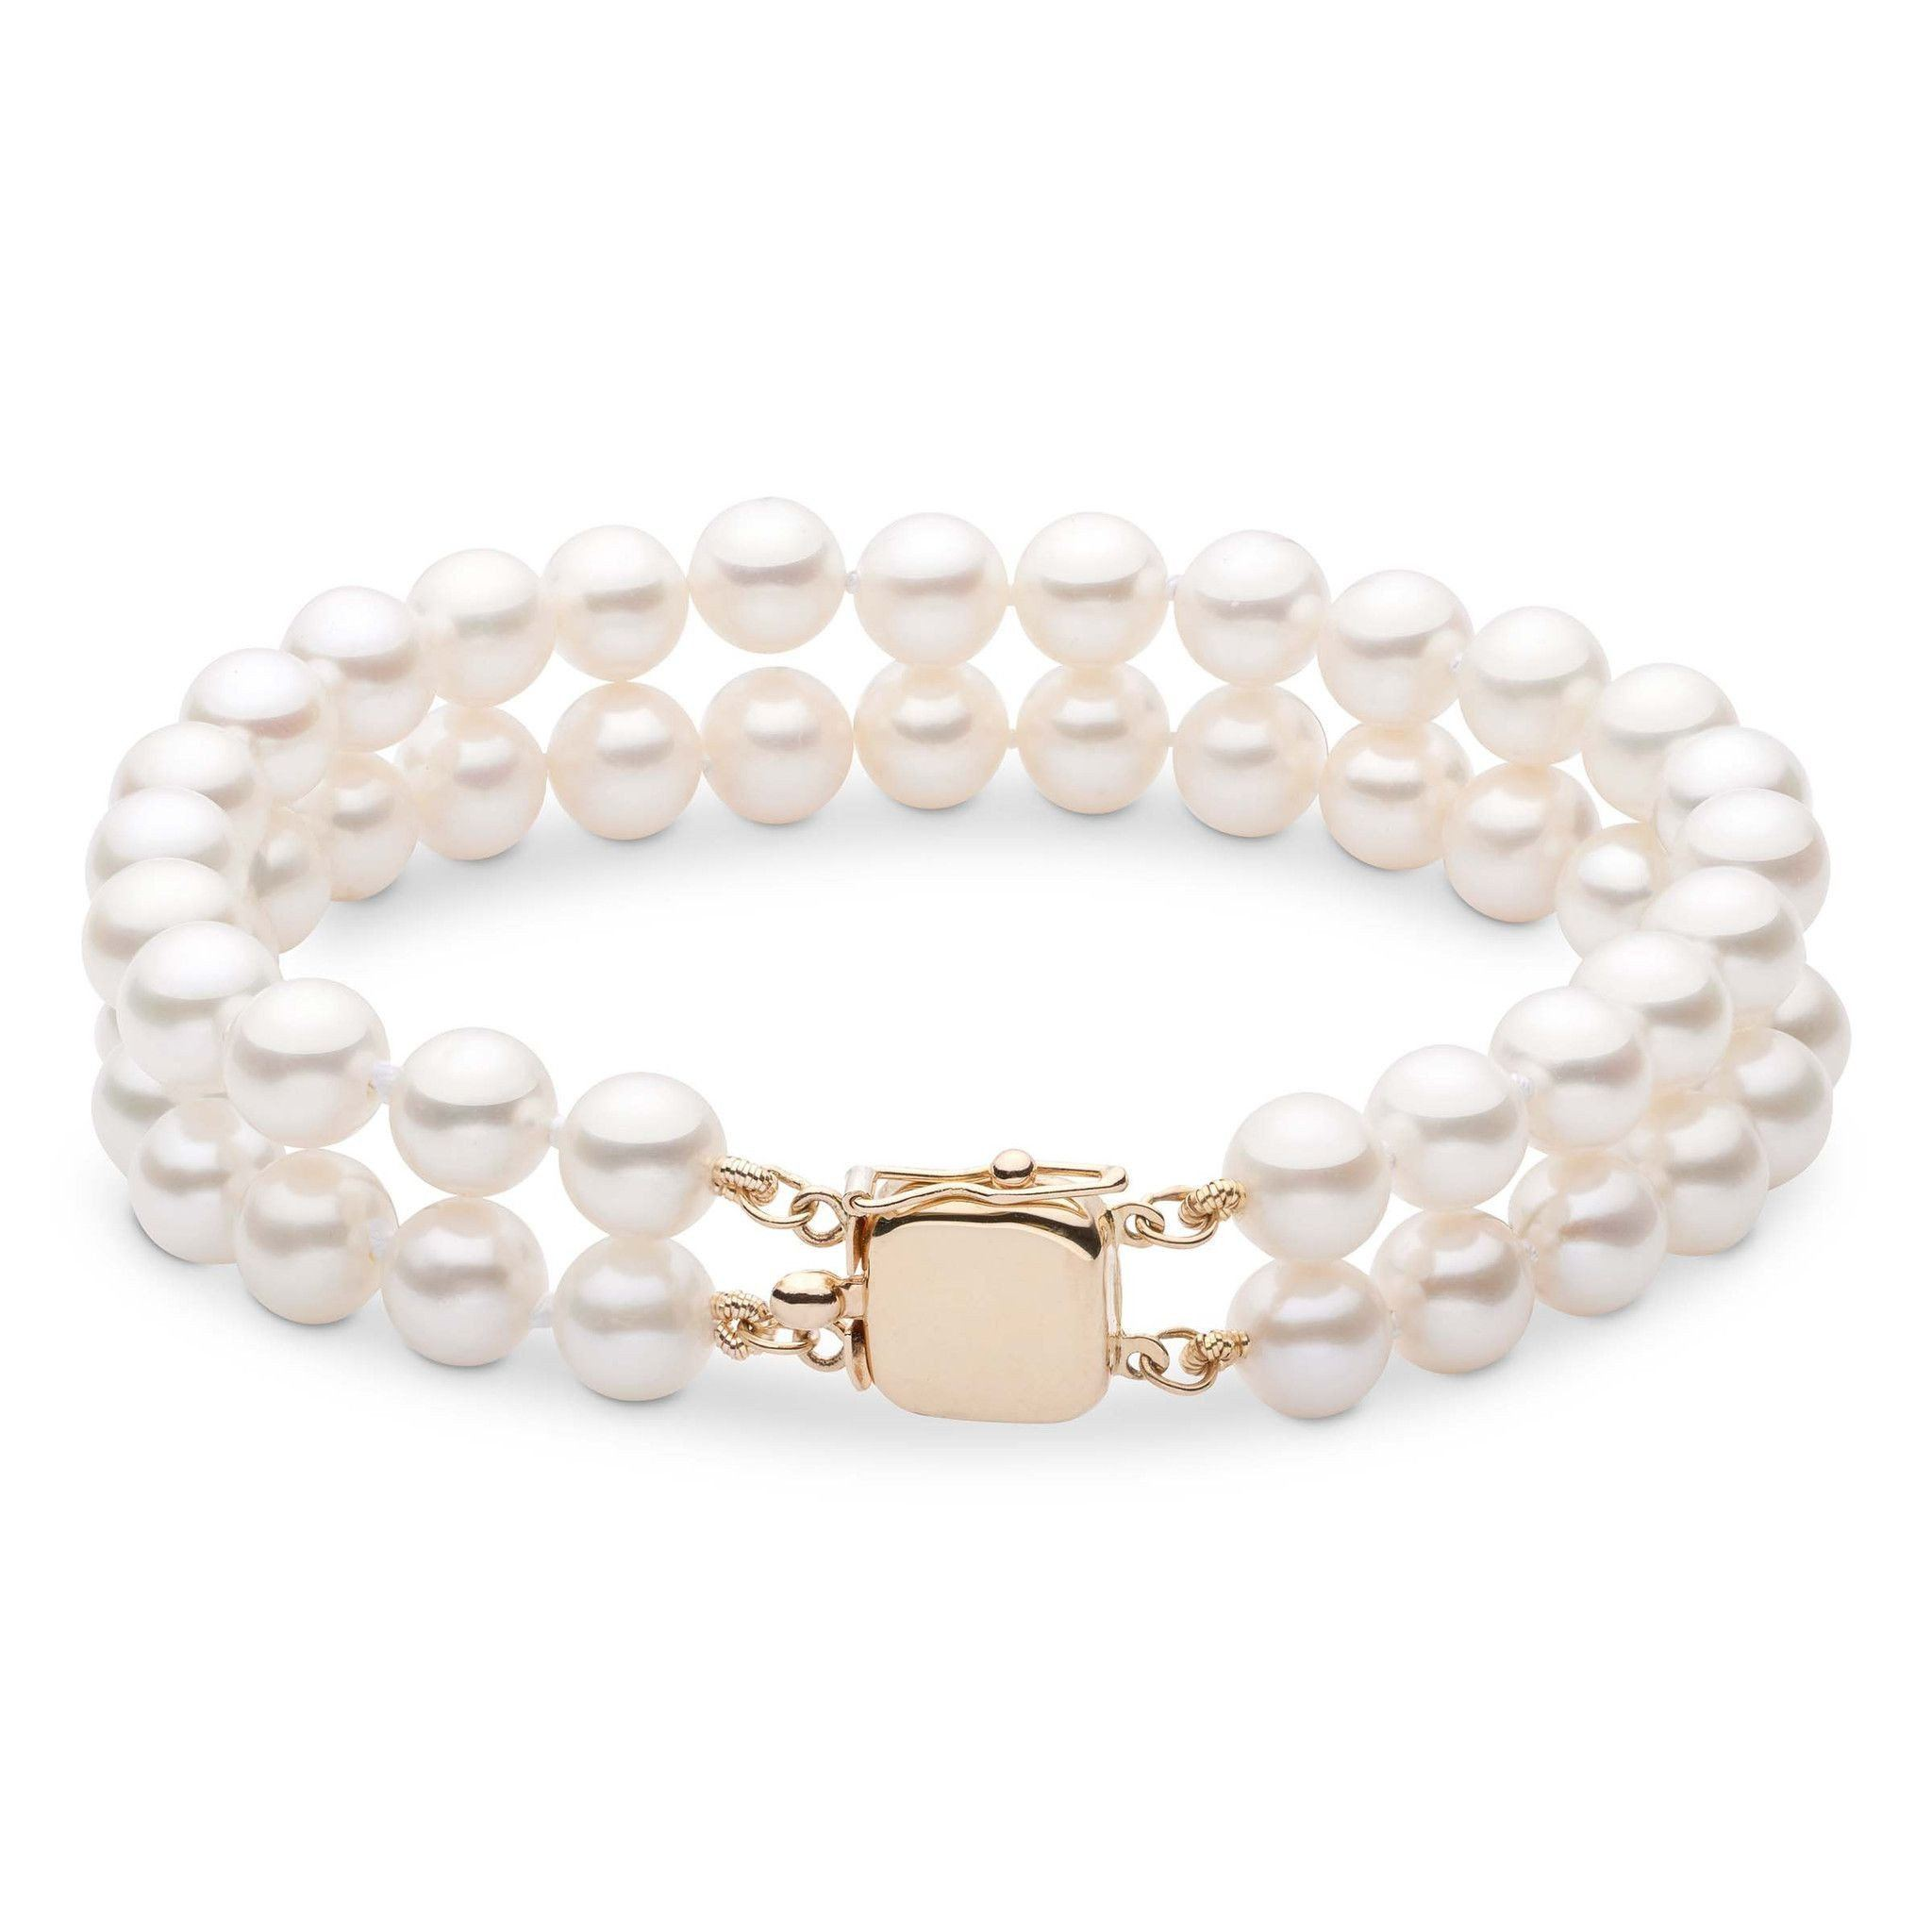 7.5-8.0 mm White Freshwater AAA Pearl Double Strand Bracelet